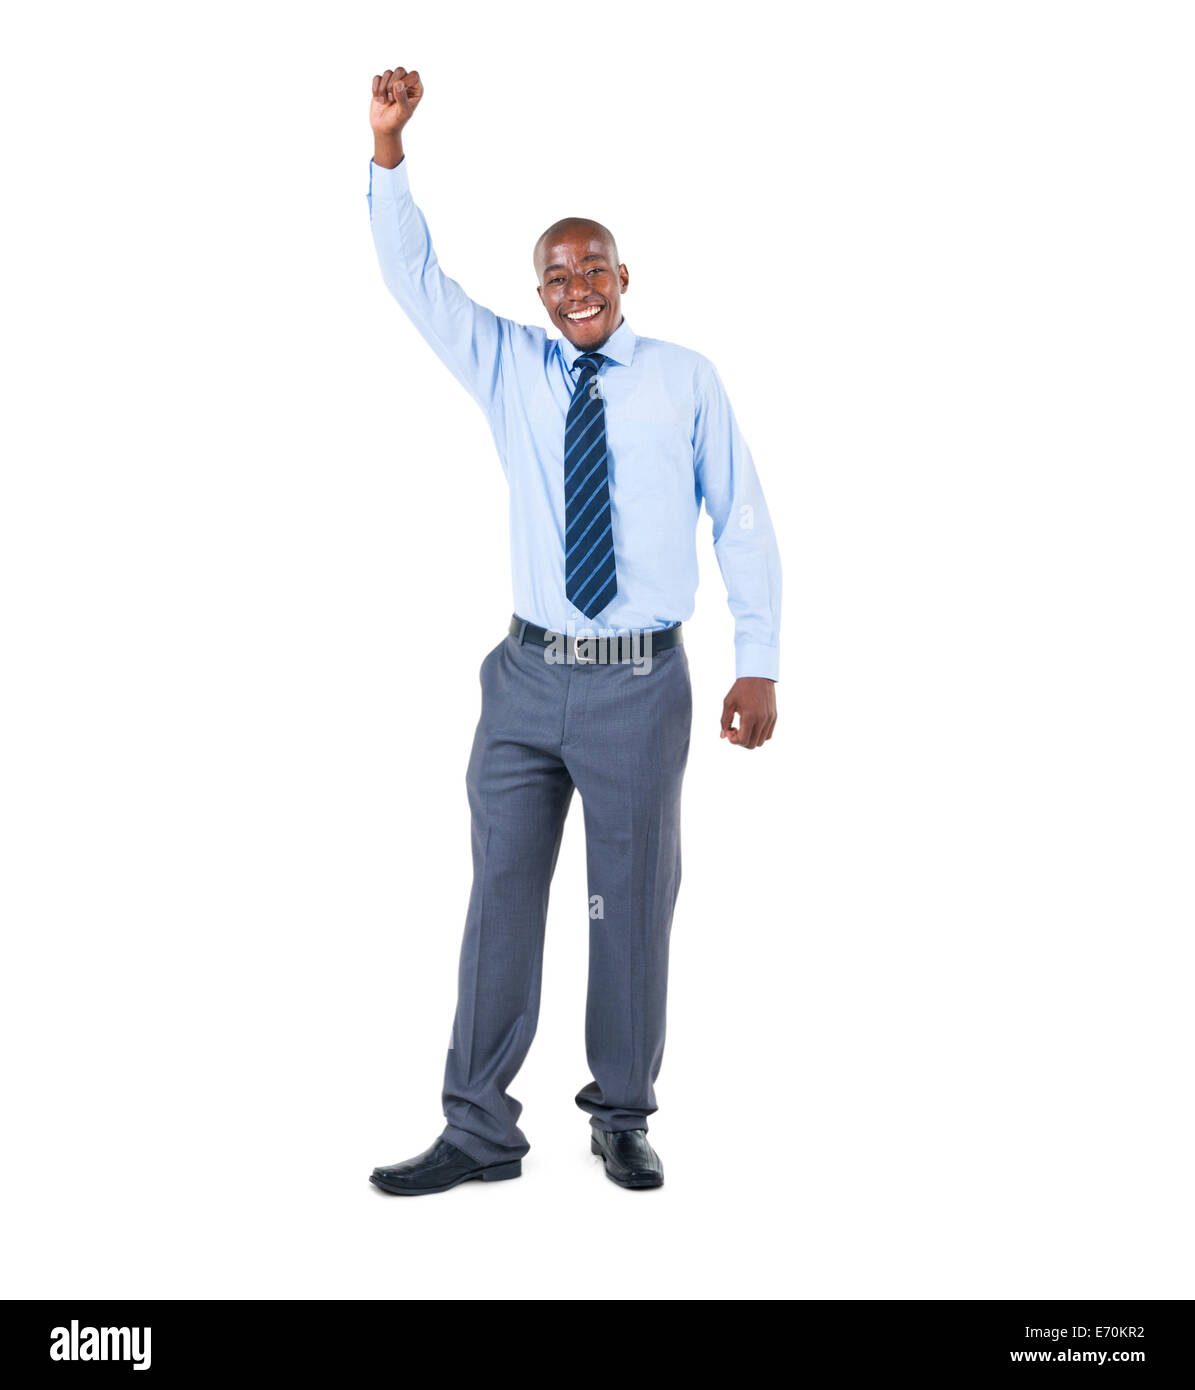 A Cheerful Businessman Celebrating with his Arms Raised - Stock Image